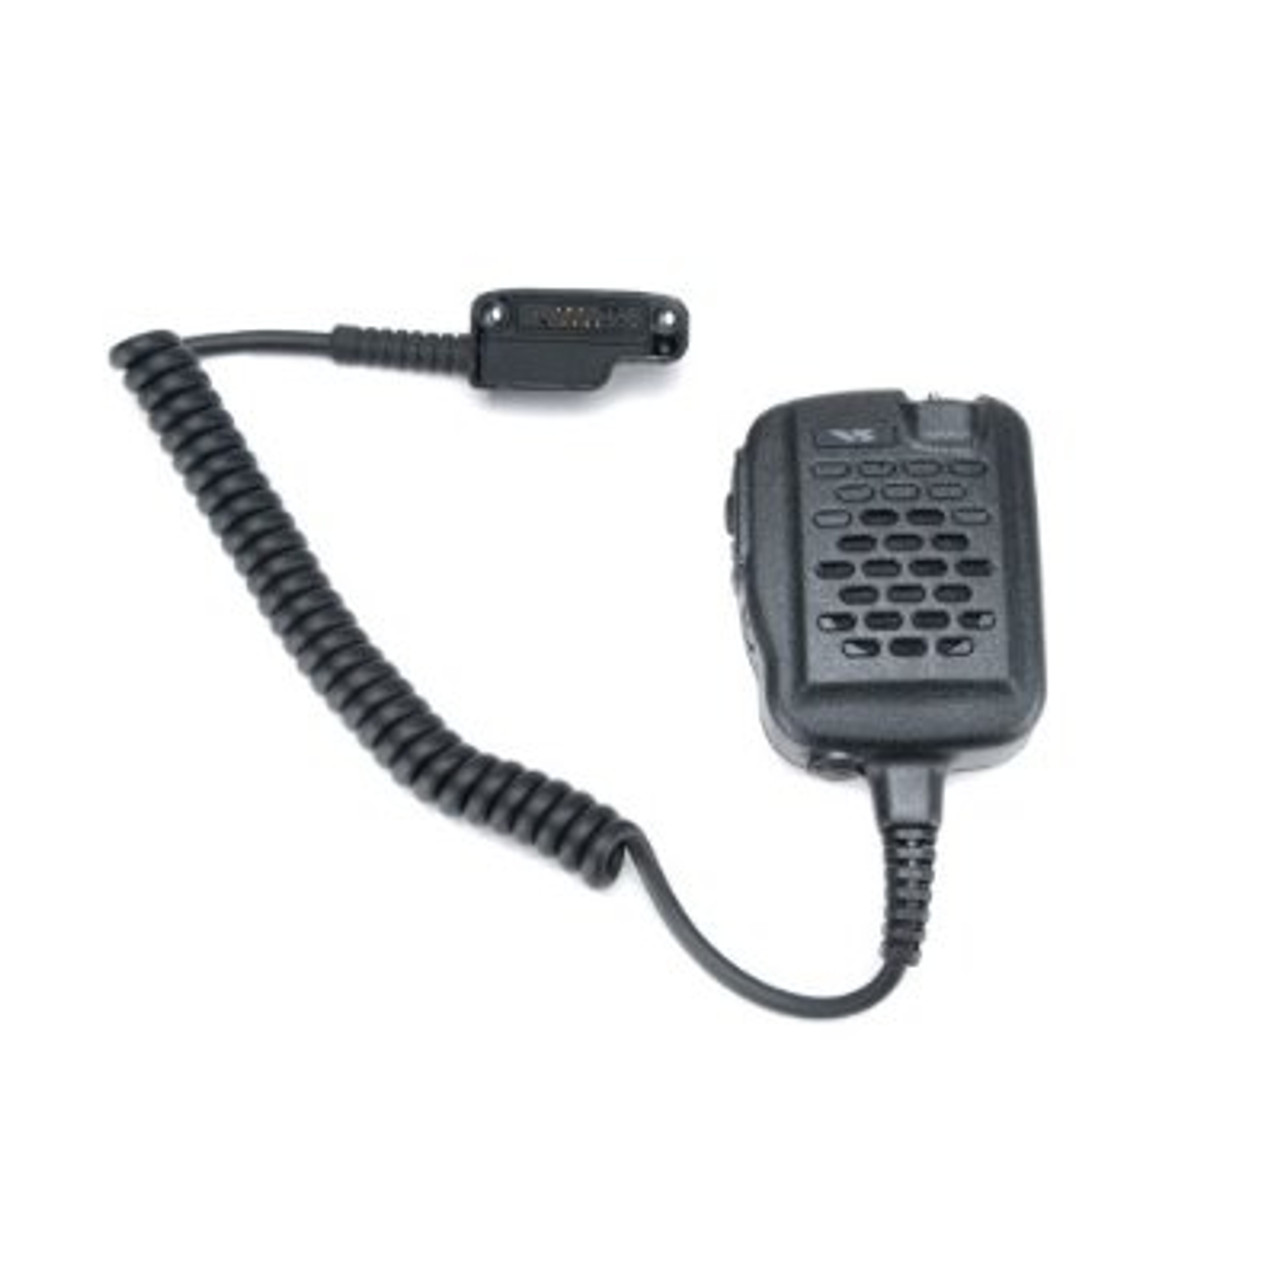 Vertex MH-50C7A Remote Speaker Microphone with Toggle Switch